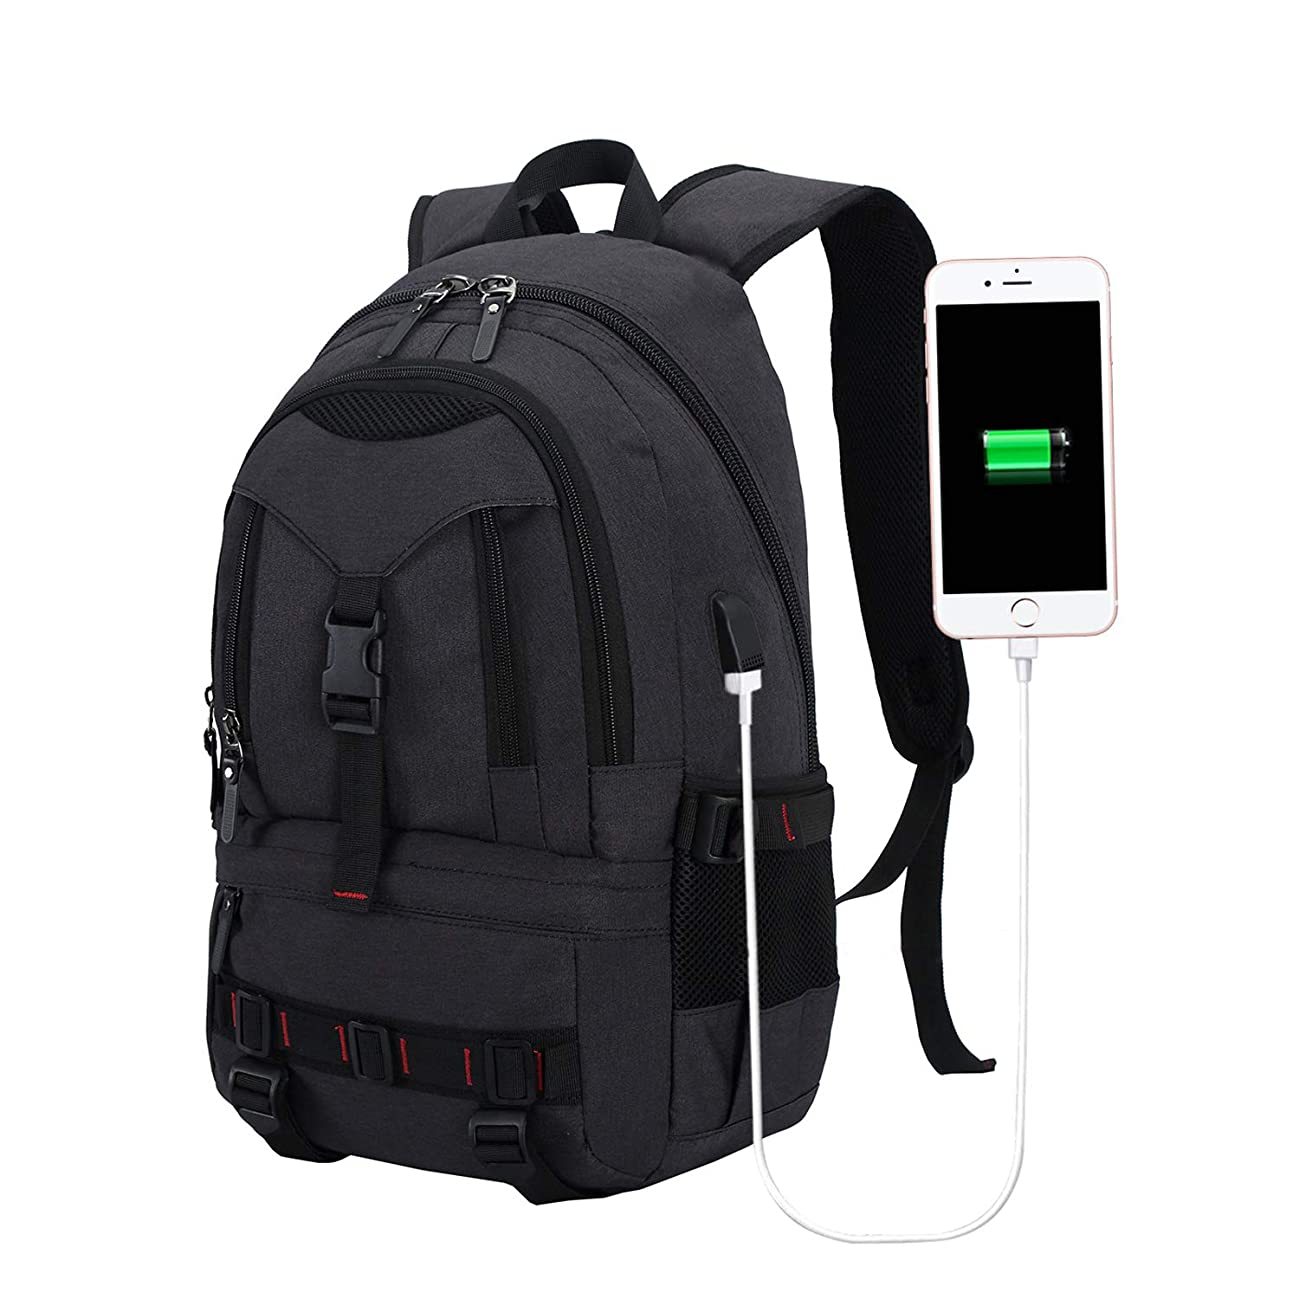 Business Travel Laptop Backpacks with USB Charging Port for Men Womens Boys Girls, Anti-Theft Water Resistant College School Bookbag Computer Backpack Fits 15.6 Inch Laptop & Notebook